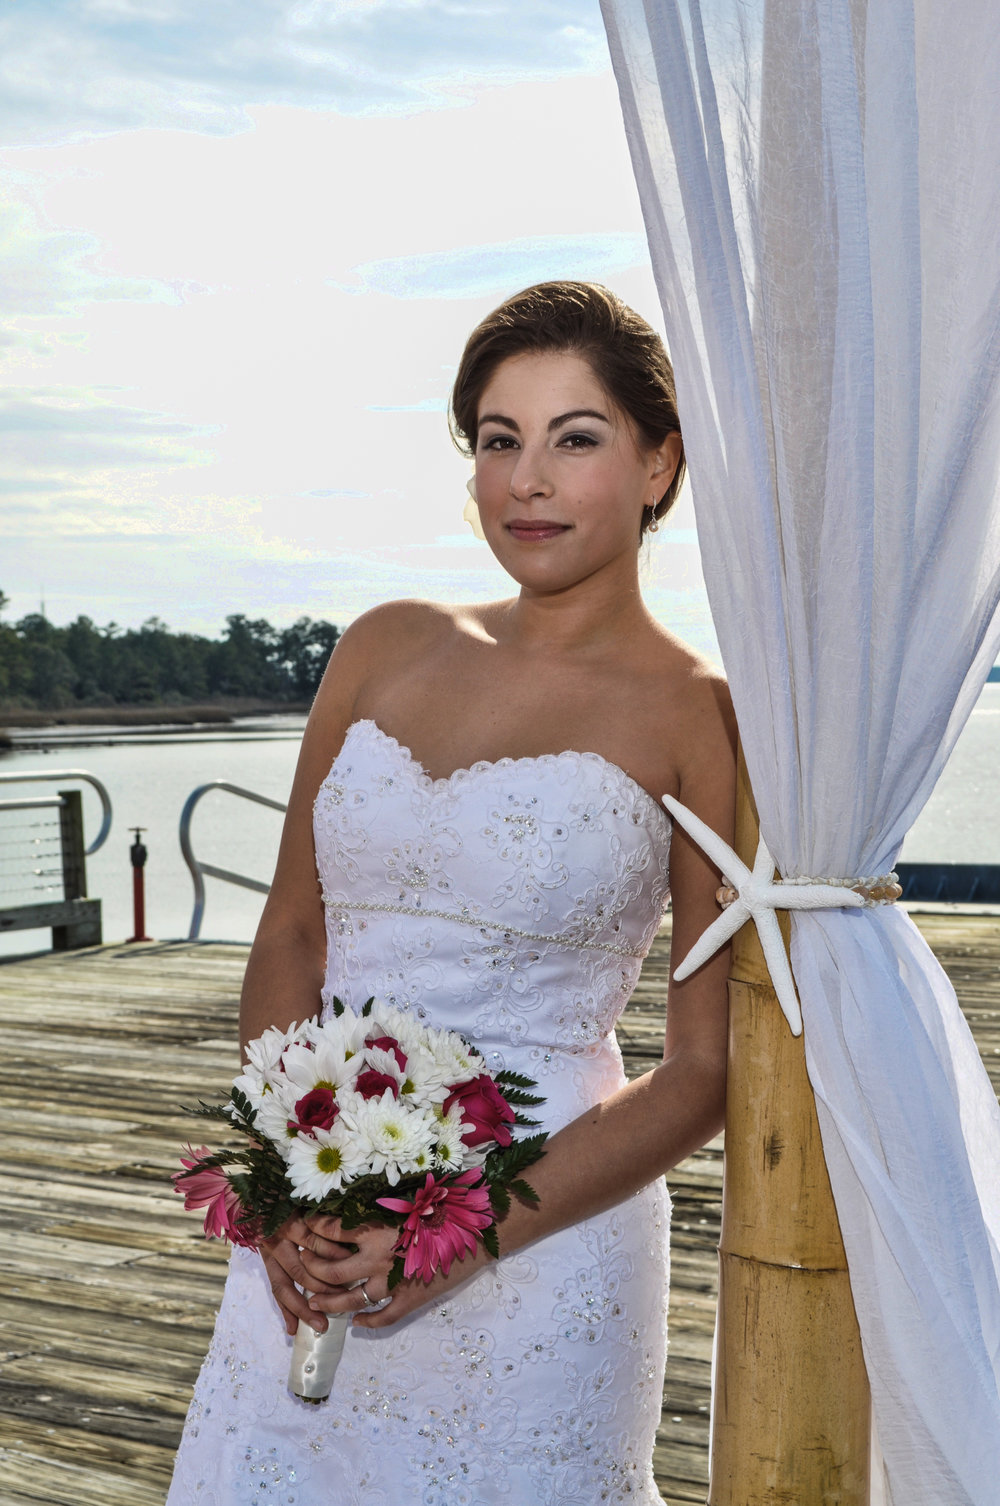 Bridal Portrait at Watermark Marina in Wilmington, NC.